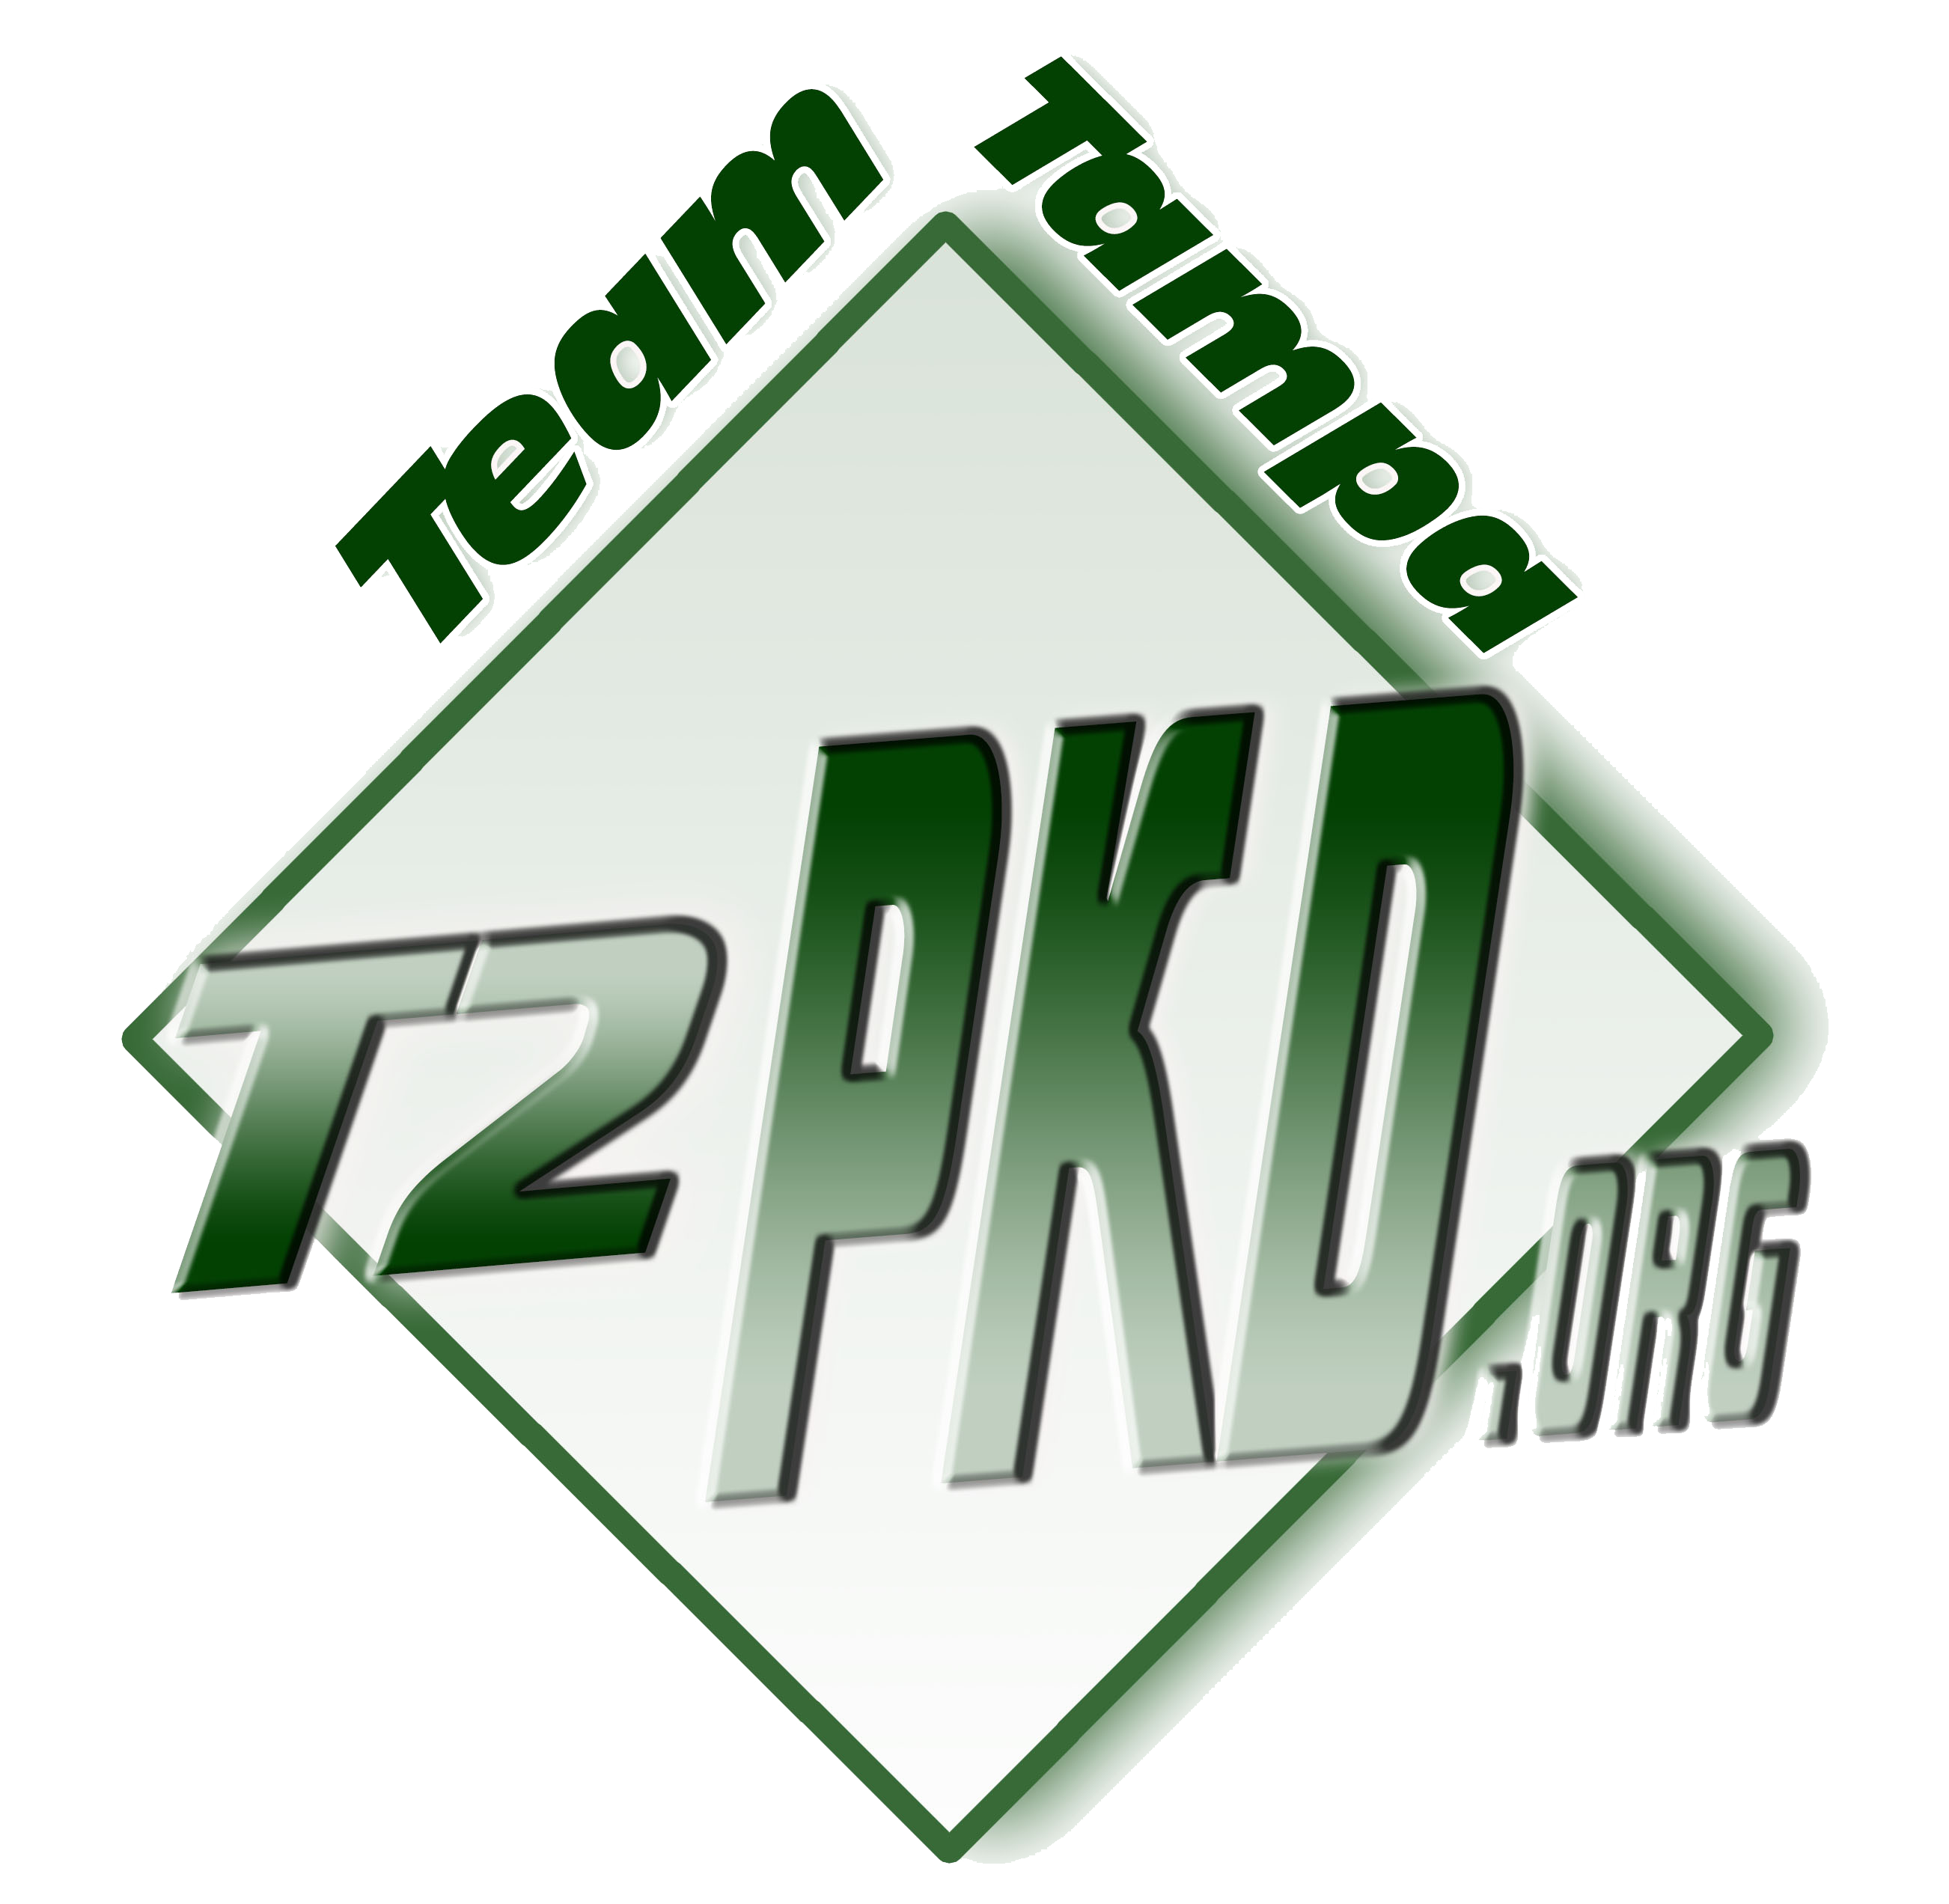 Team Tampa PKD